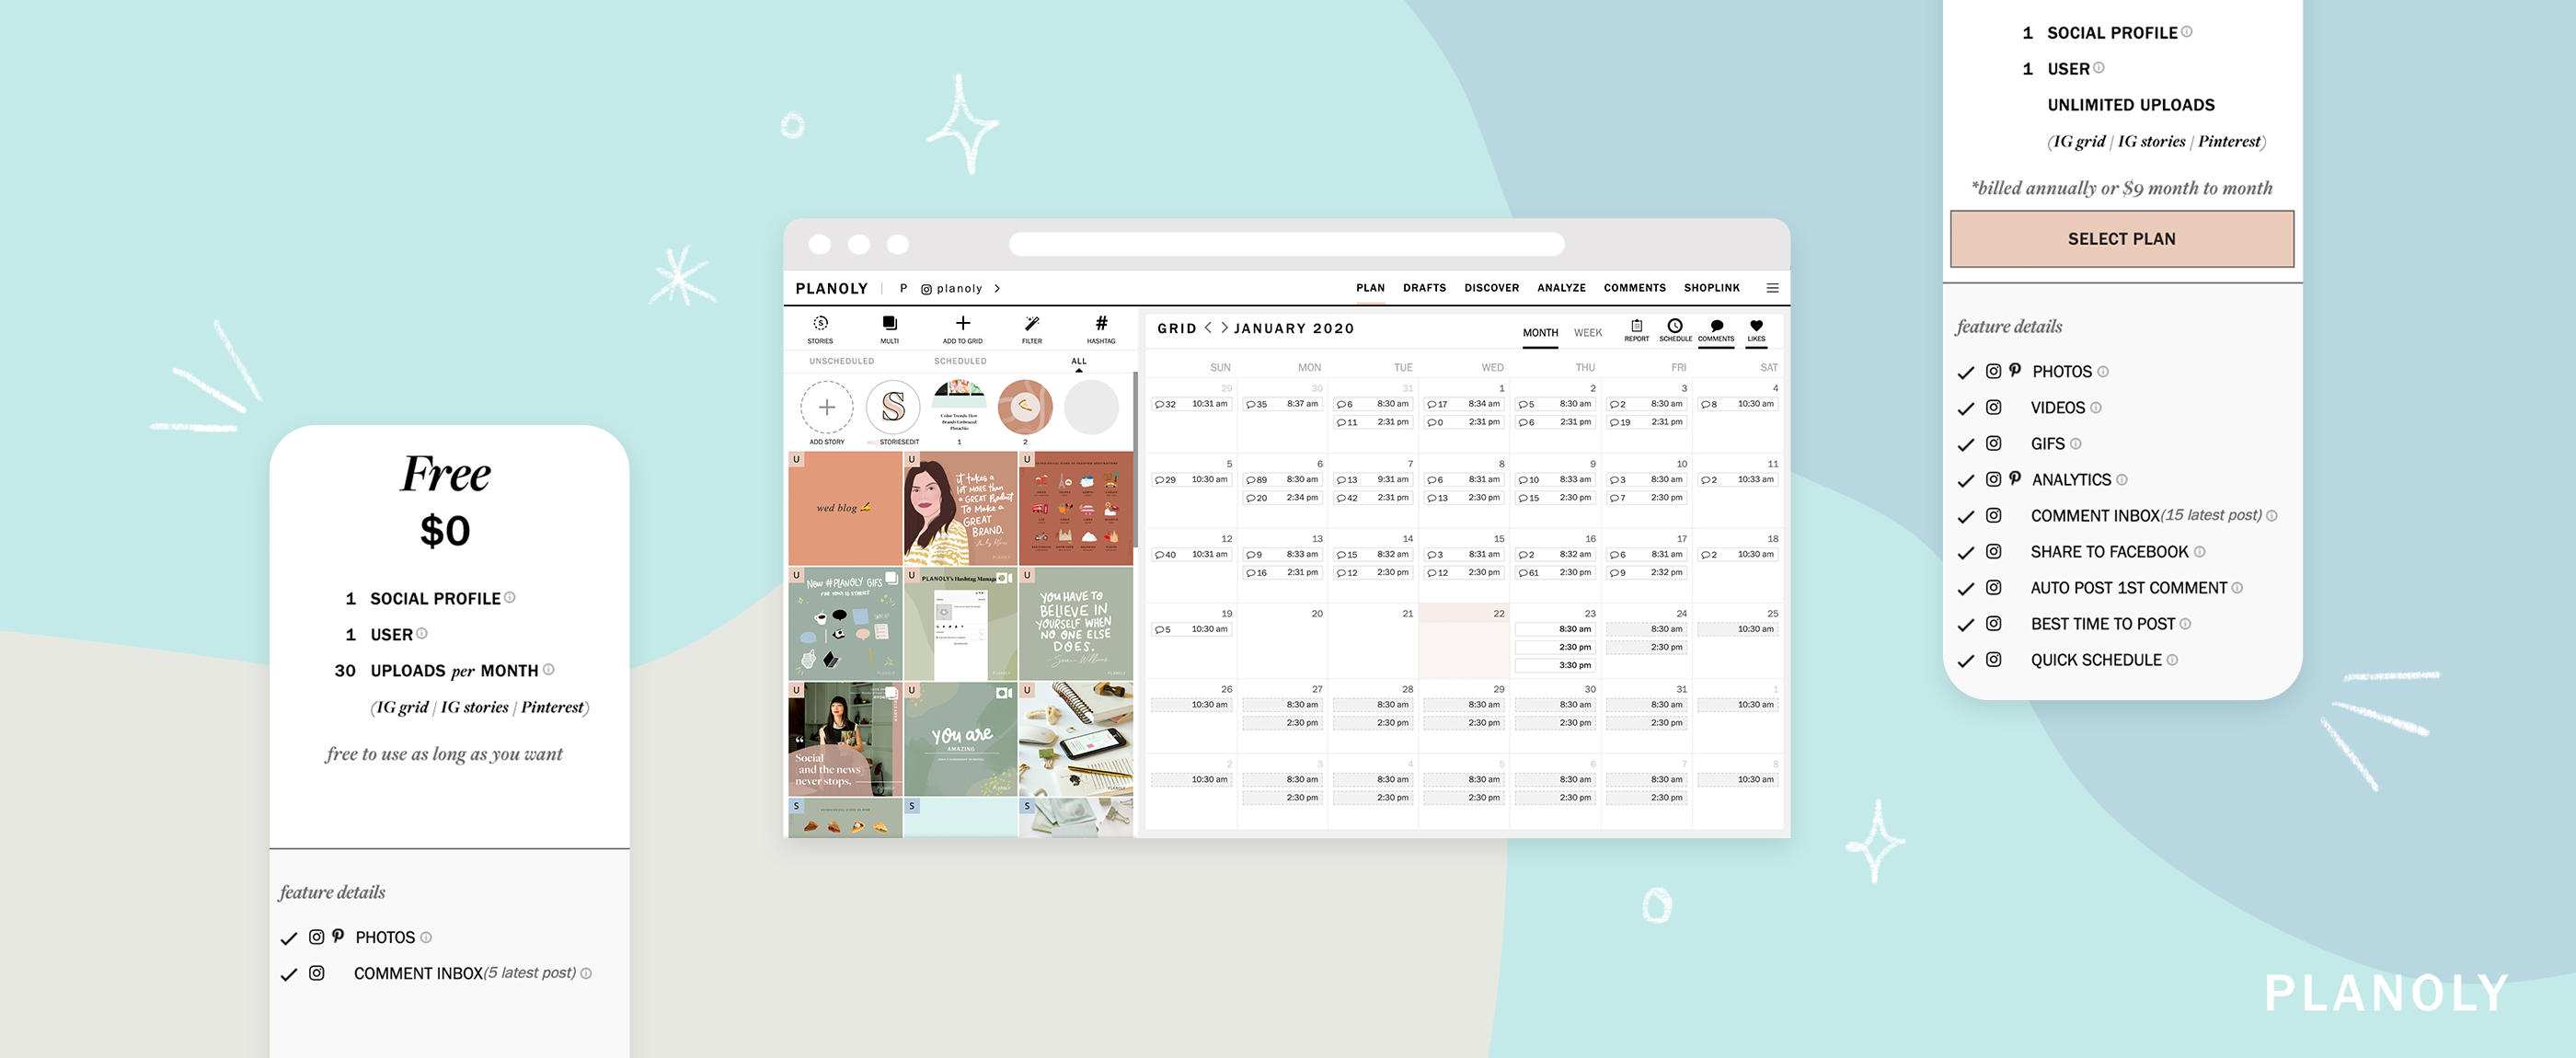 PLANOLY-Blog-Post-4-Tips-for-Planning-Better-with-a-Team-for-Instagram-Banner